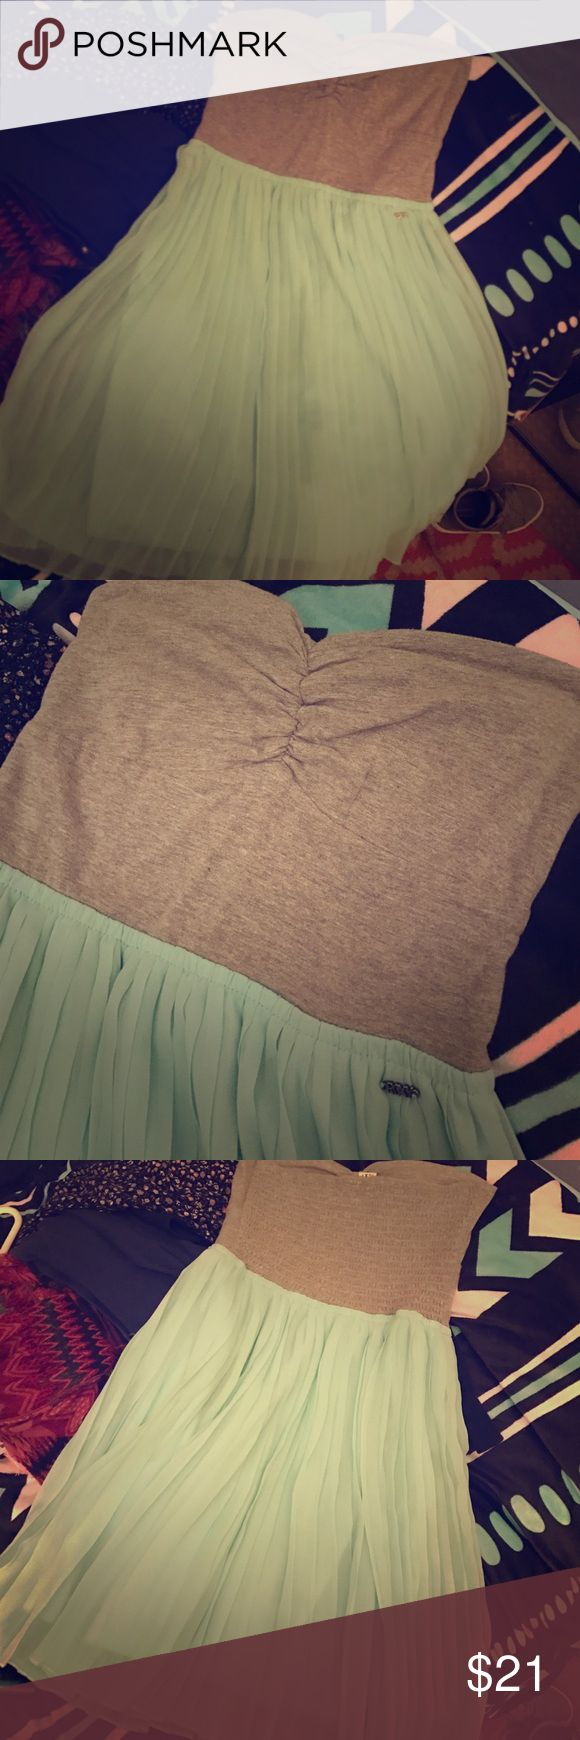 🖤Awesome Roxy Dress💚 NWOT and worn once!! Heart shaped tube top with ruching down the center cleavage area and a pleated, Sheer, mint green skirt. Simply cute and flawless!! Roxy Dresses Mini